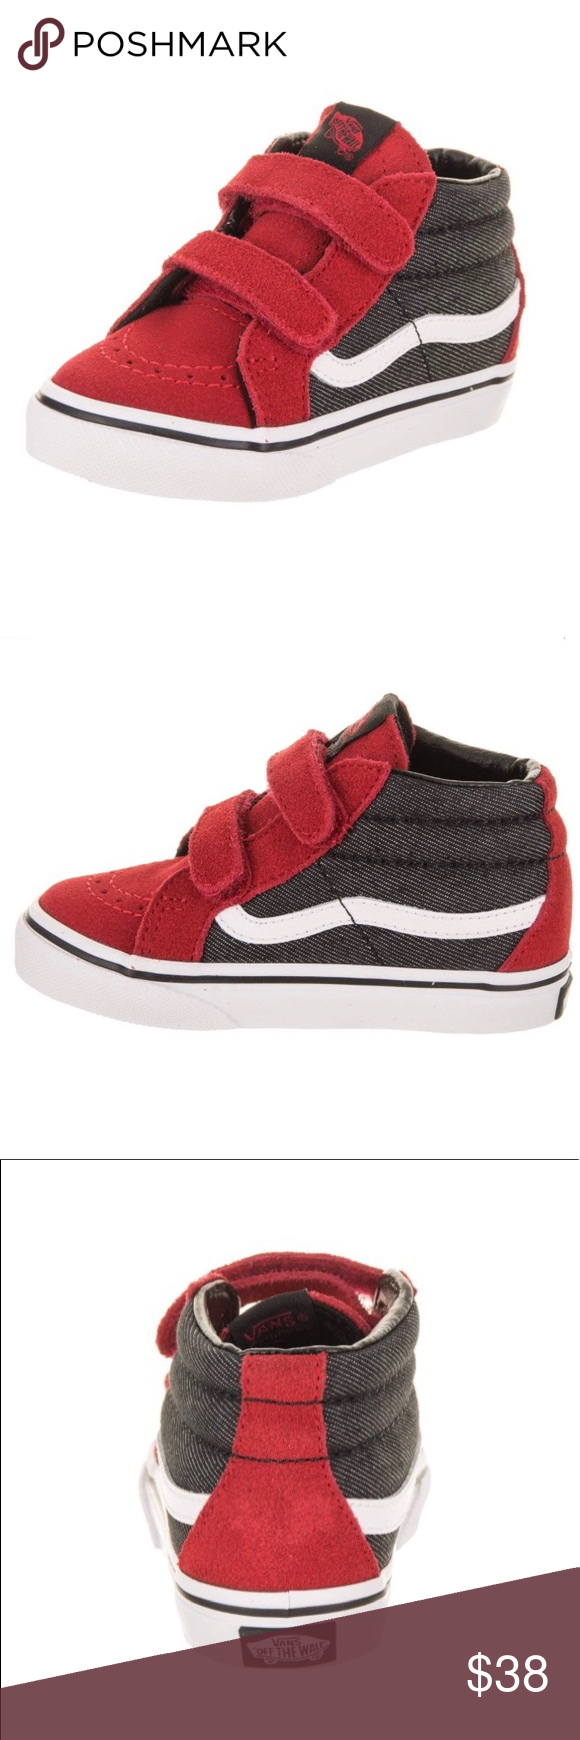 d58def957be NEW Kids Vans Sk8 Hi Reissue Velcro Shoes Brand new!! Kids size 11.